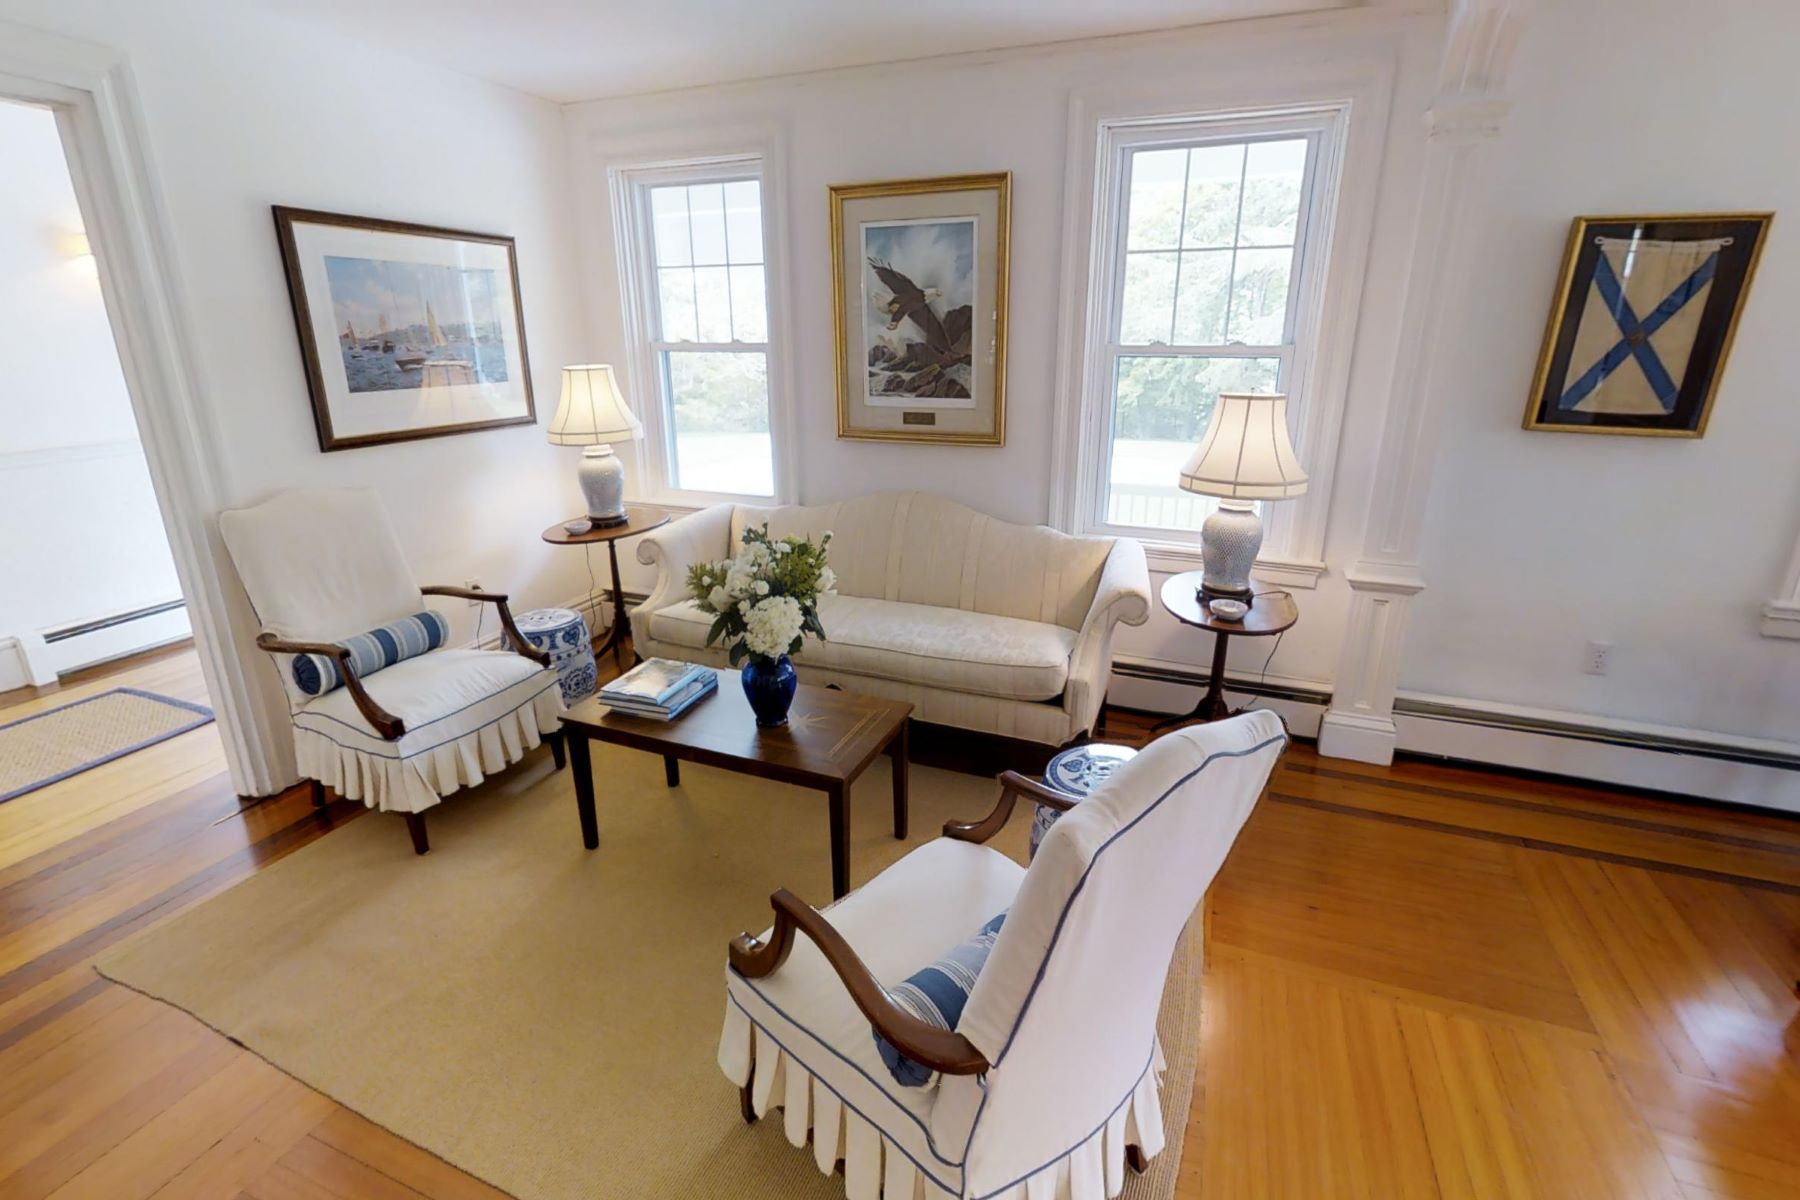 Additional photo for property listing at 'Friedheim' 89 Harrison Avenue 1 Newport, Rhode Island 02840 United States